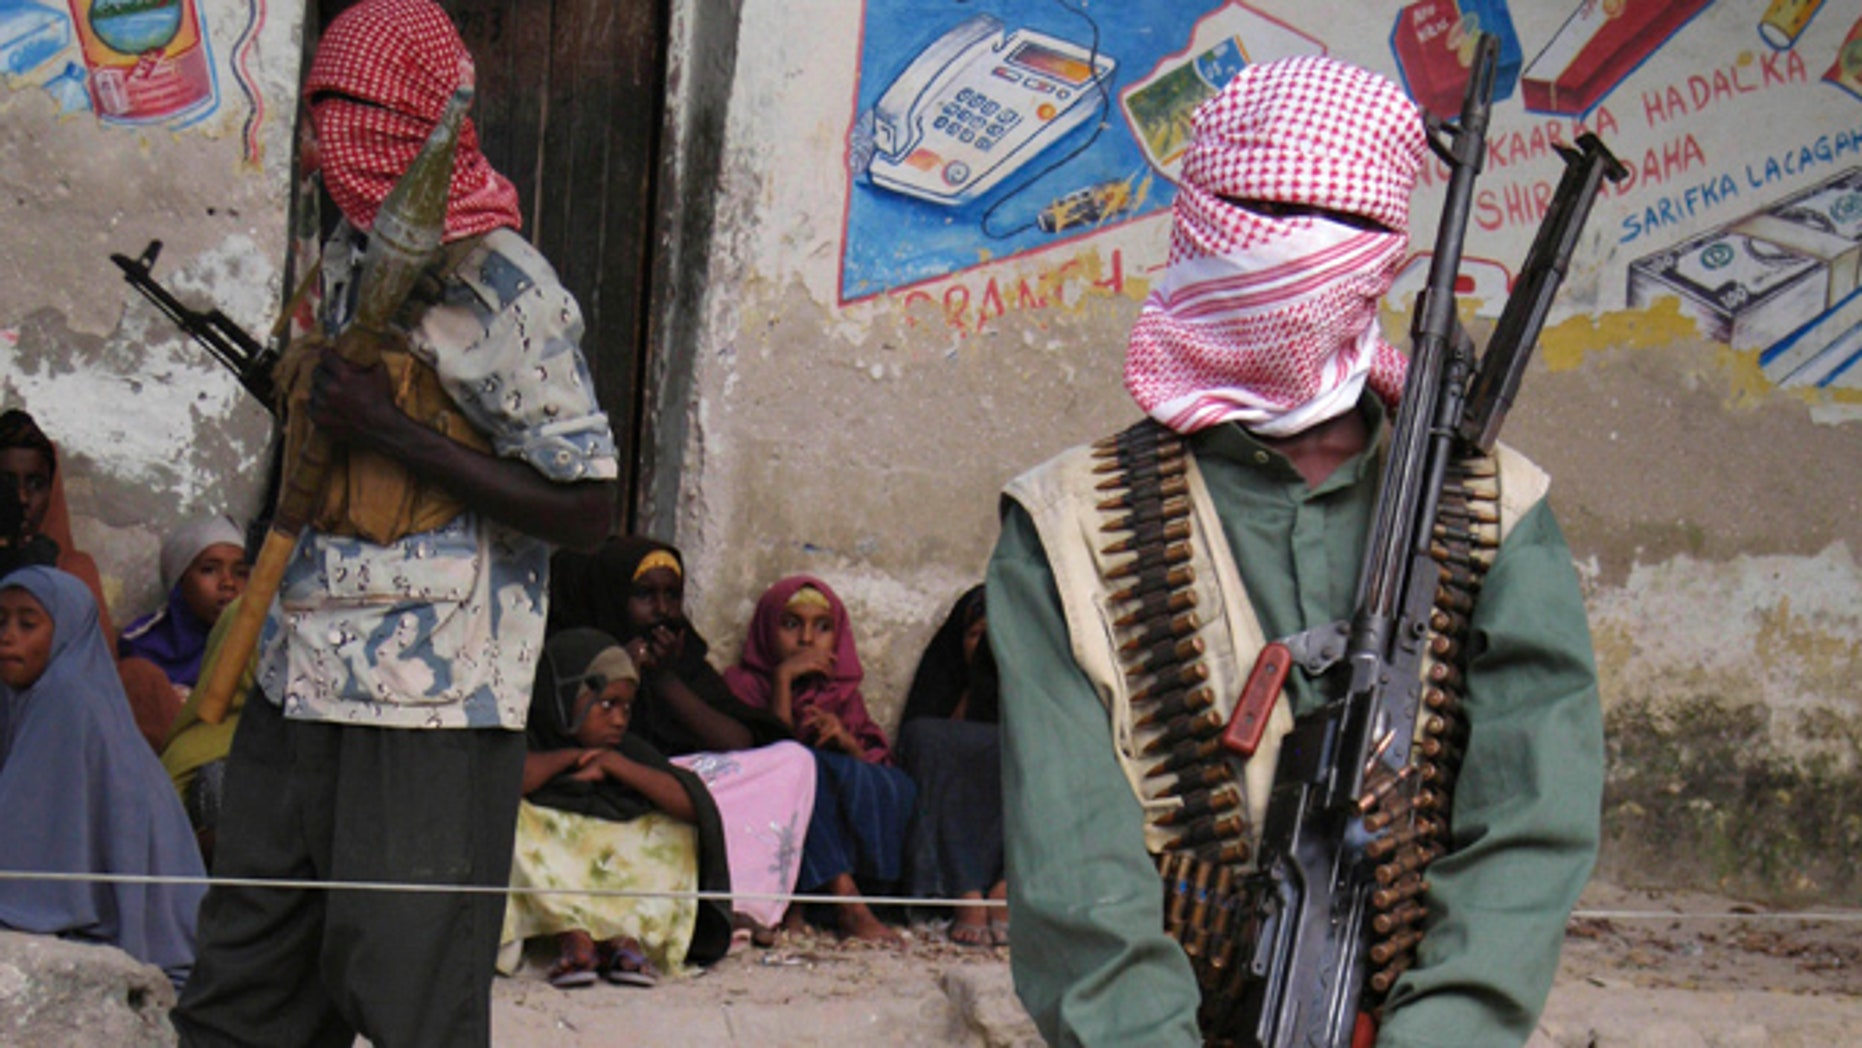 Dec. 18, 2008: Somali al-Shabaab fighters stand stand guard during a public flogging by the hardline Islamic group in Bula Marer town.